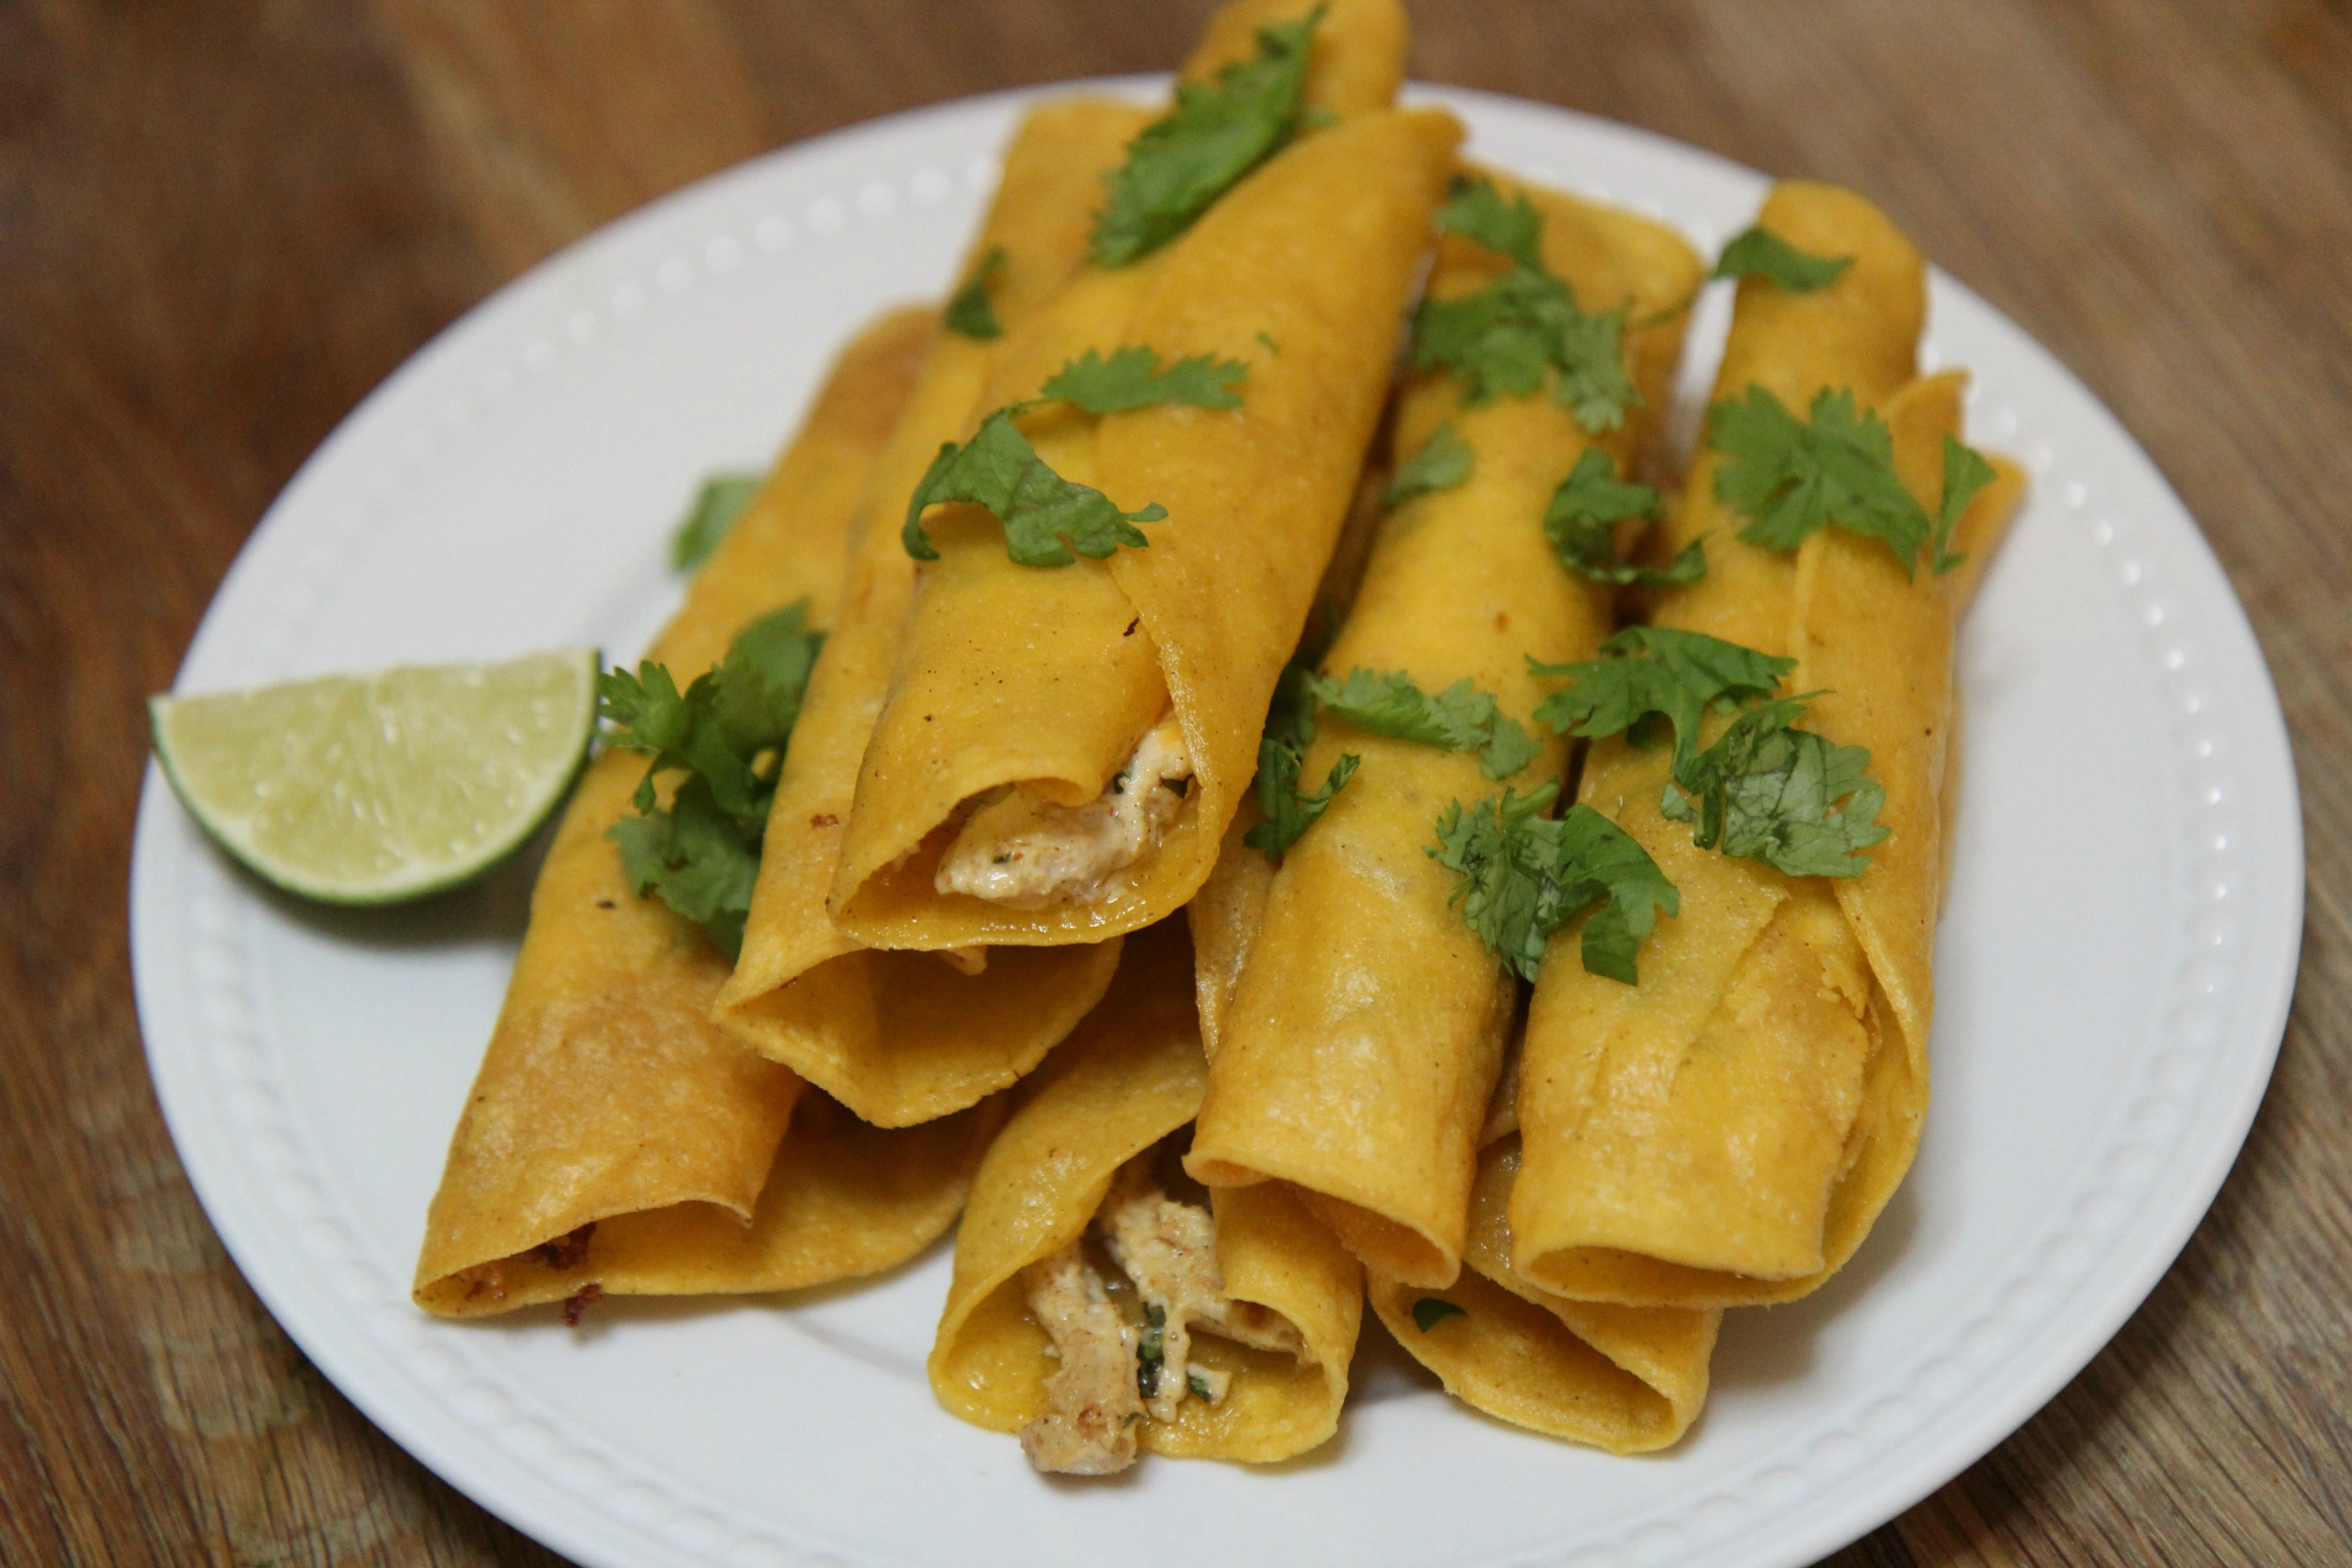 Seasoned chicken and cream cheese rolled inside corn tortillas and fried to crispy perfection